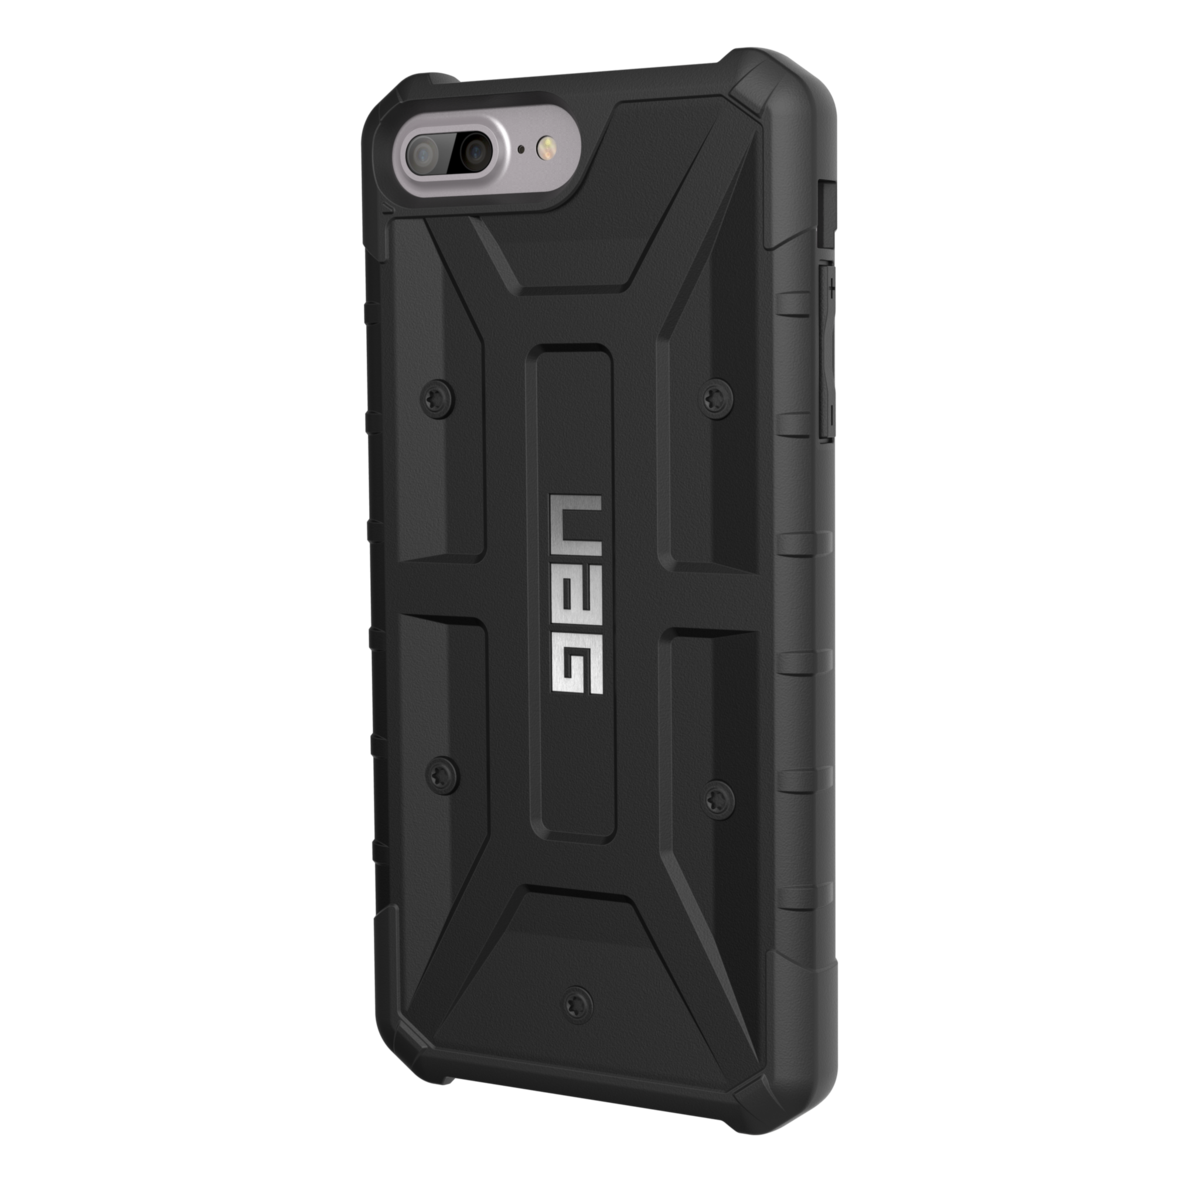 เคส UAG PATHFINDER Series iPhone 8 Plus / 7 Plus / 6S Plus / 6 Plus